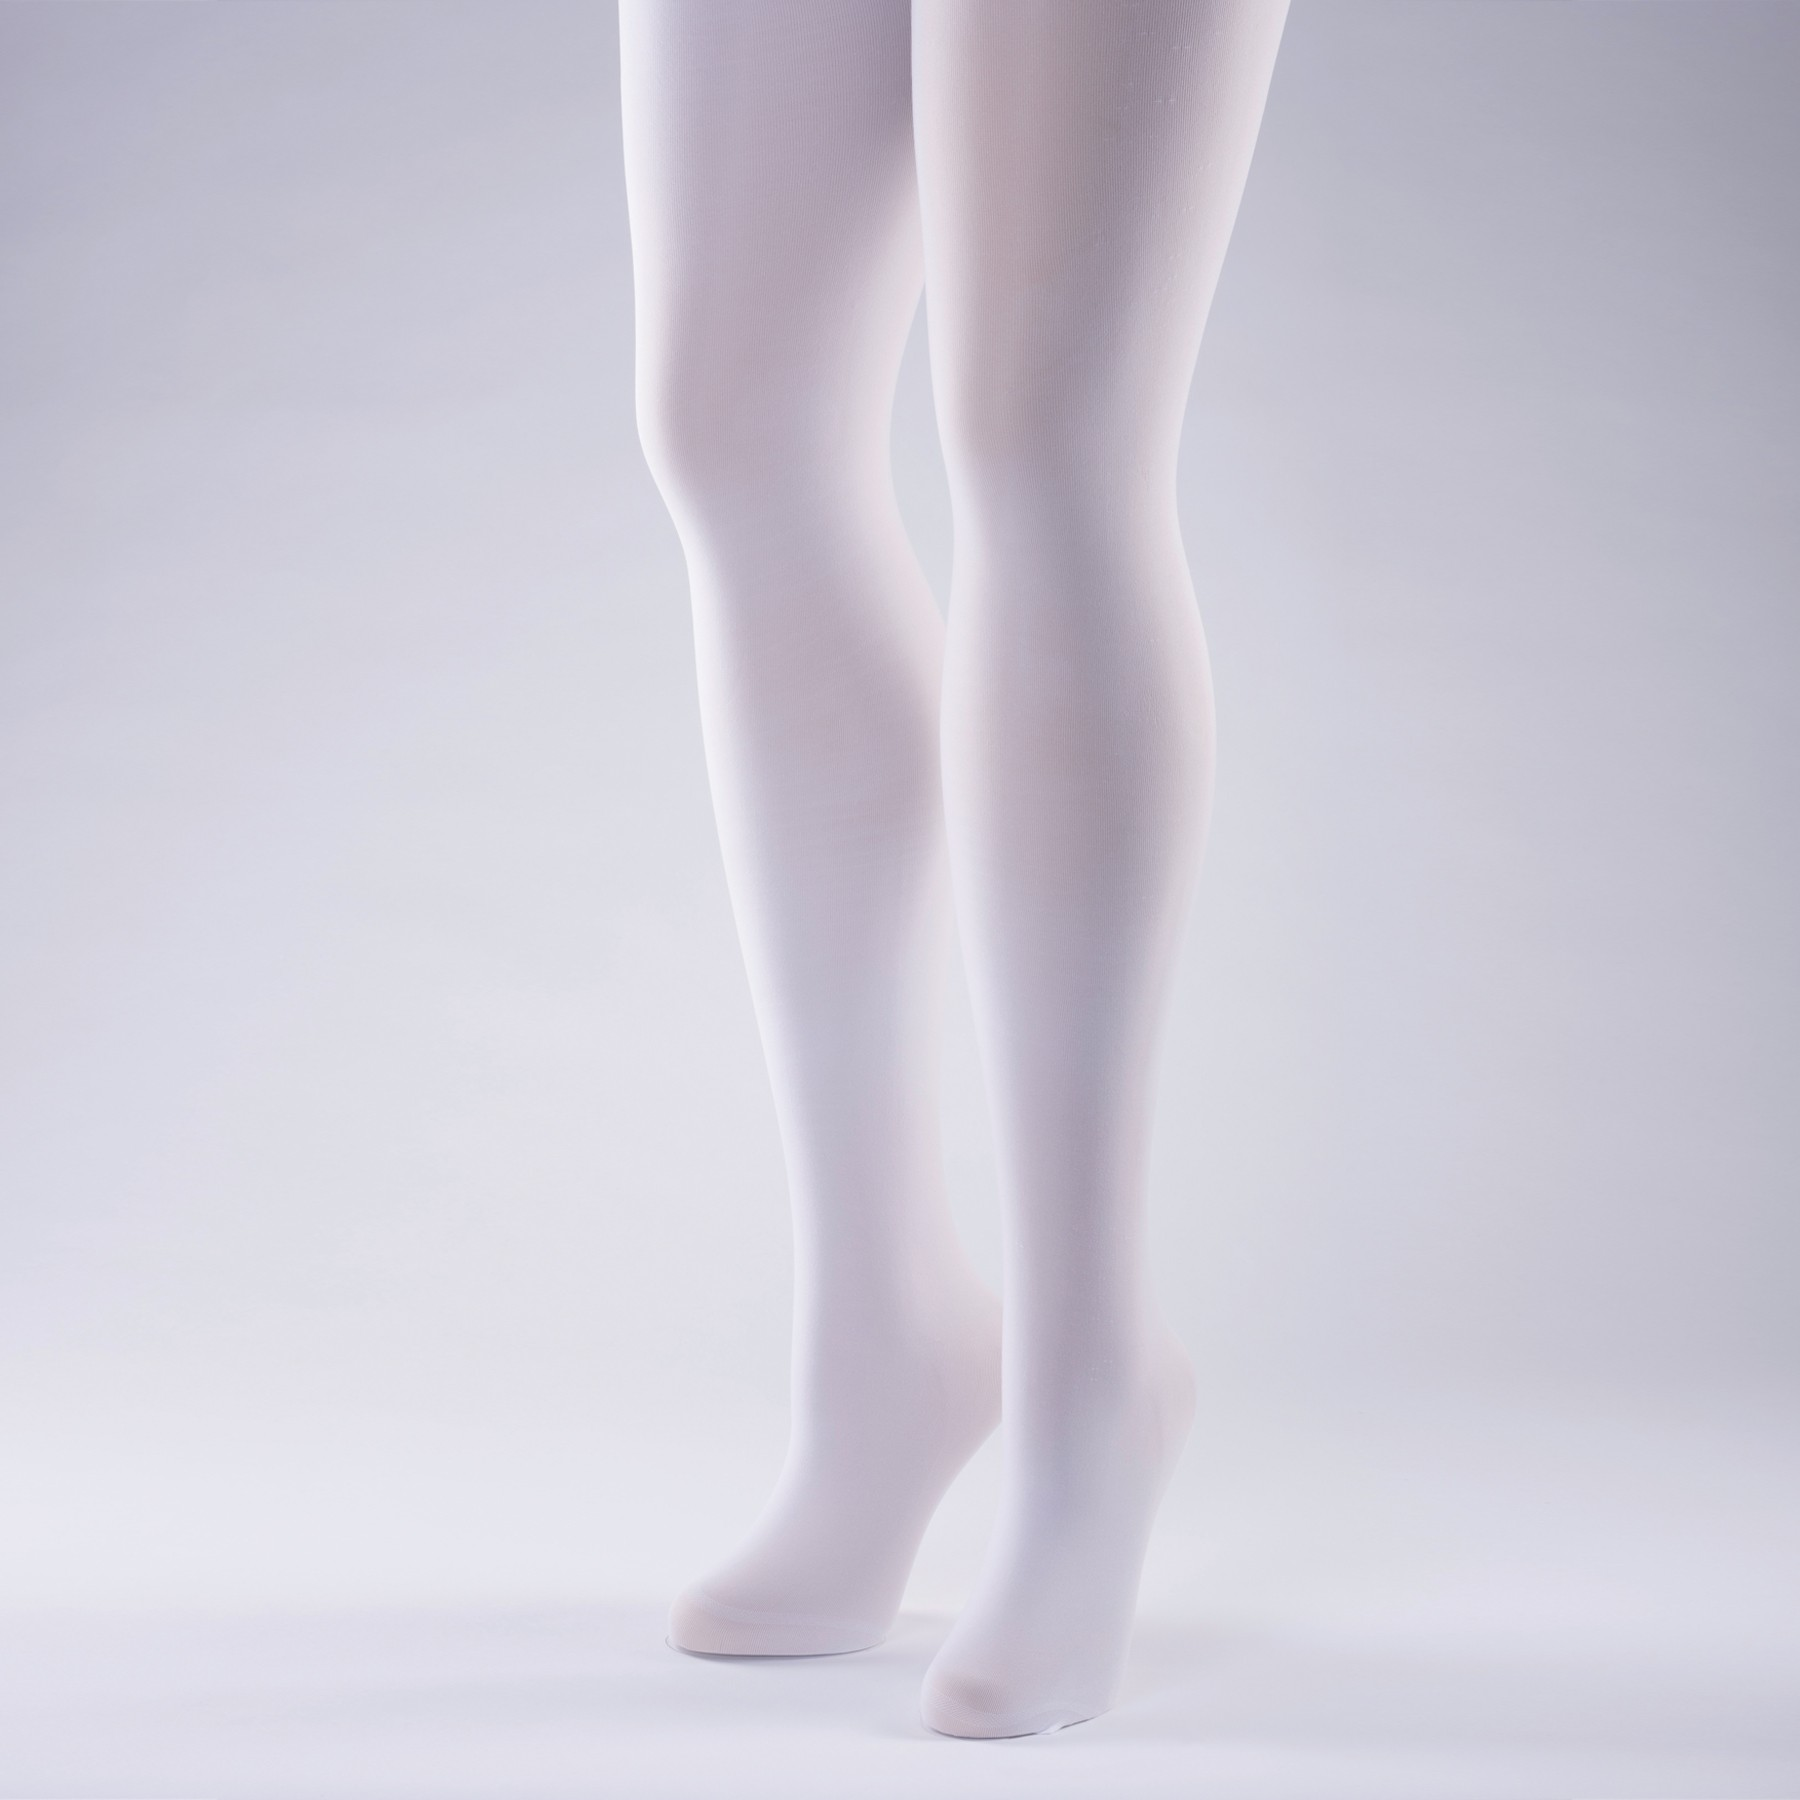 50 Denier Opaque Tights - Adult One Size White